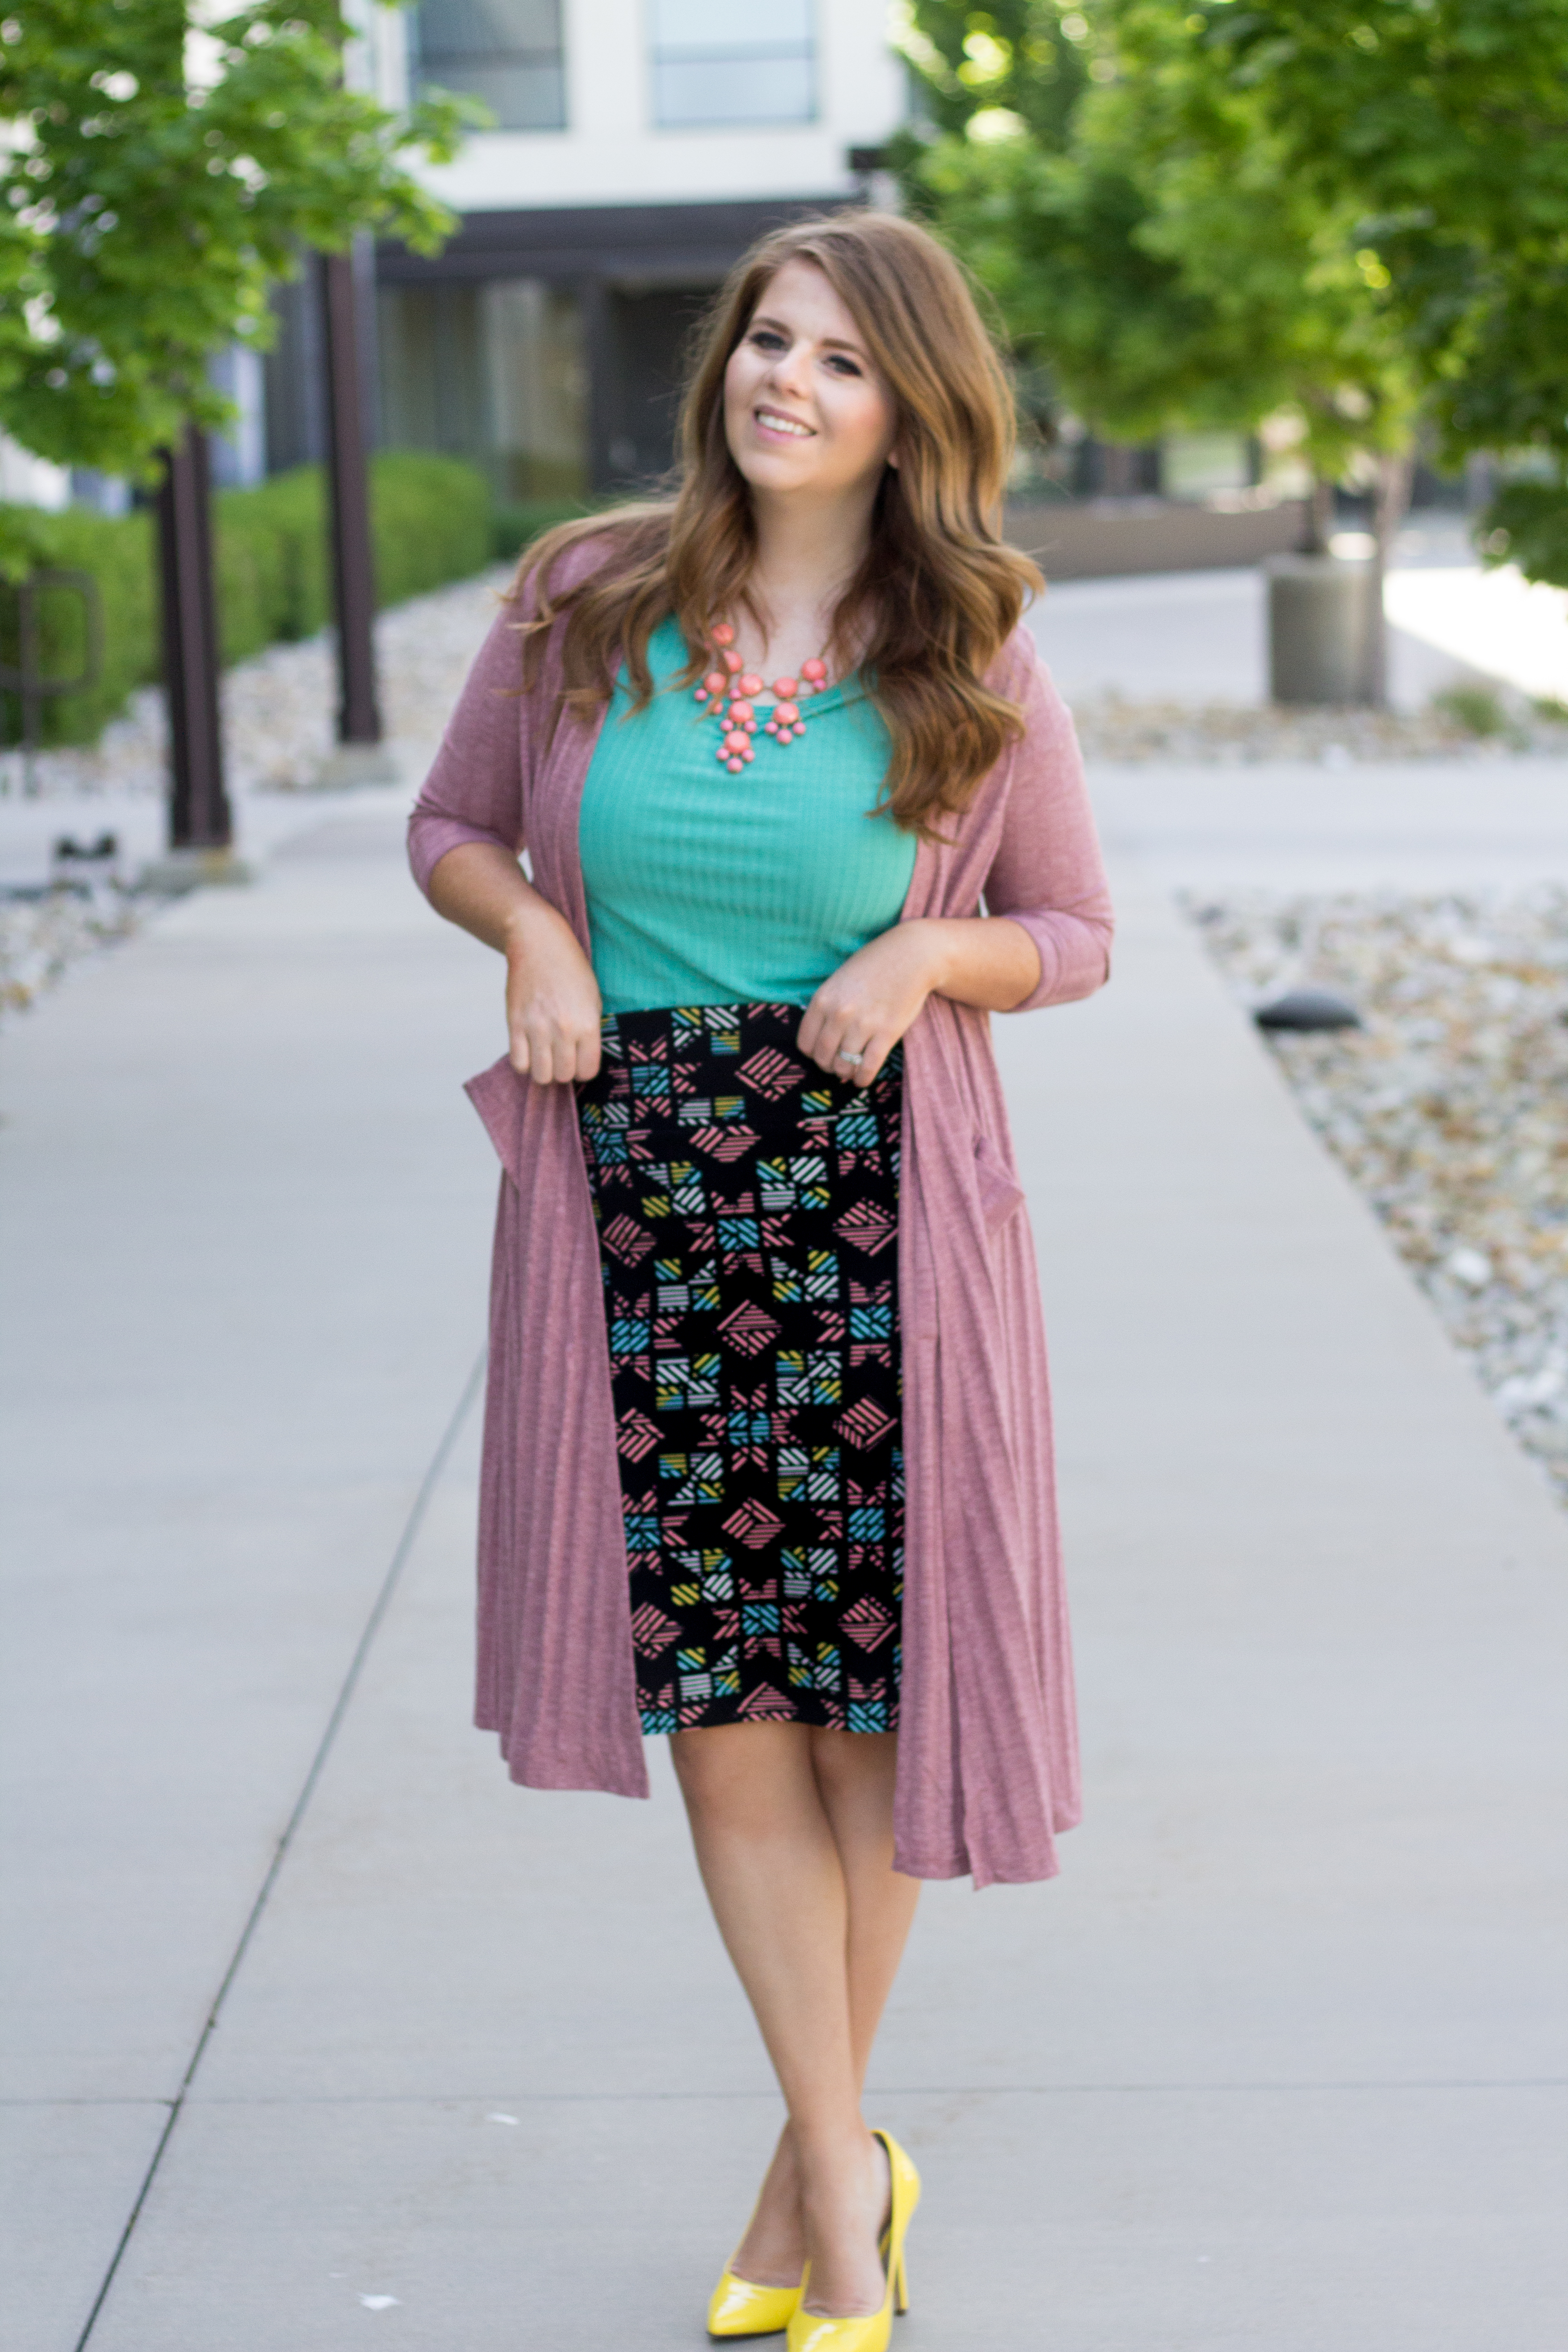 Lularoe Outfit ( Lularoe Cassie, Classic Tee, and Sarah)